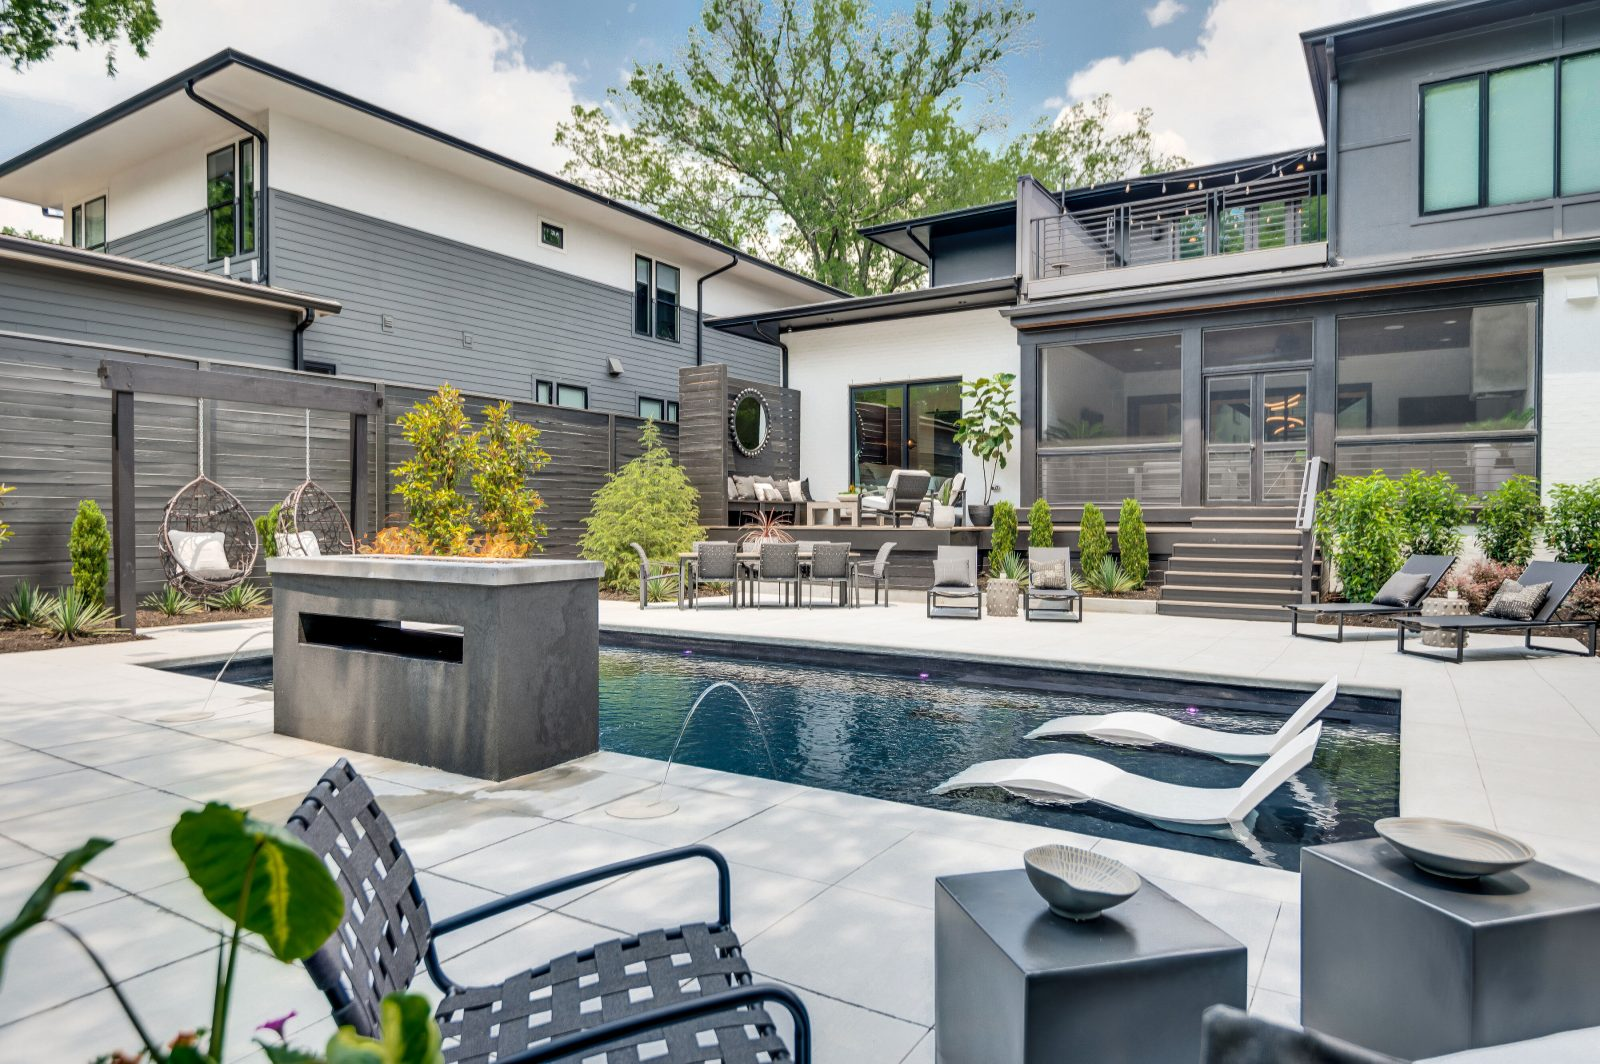 Outdoor pool is the main feature of this backyard oasis in Nashville TN.